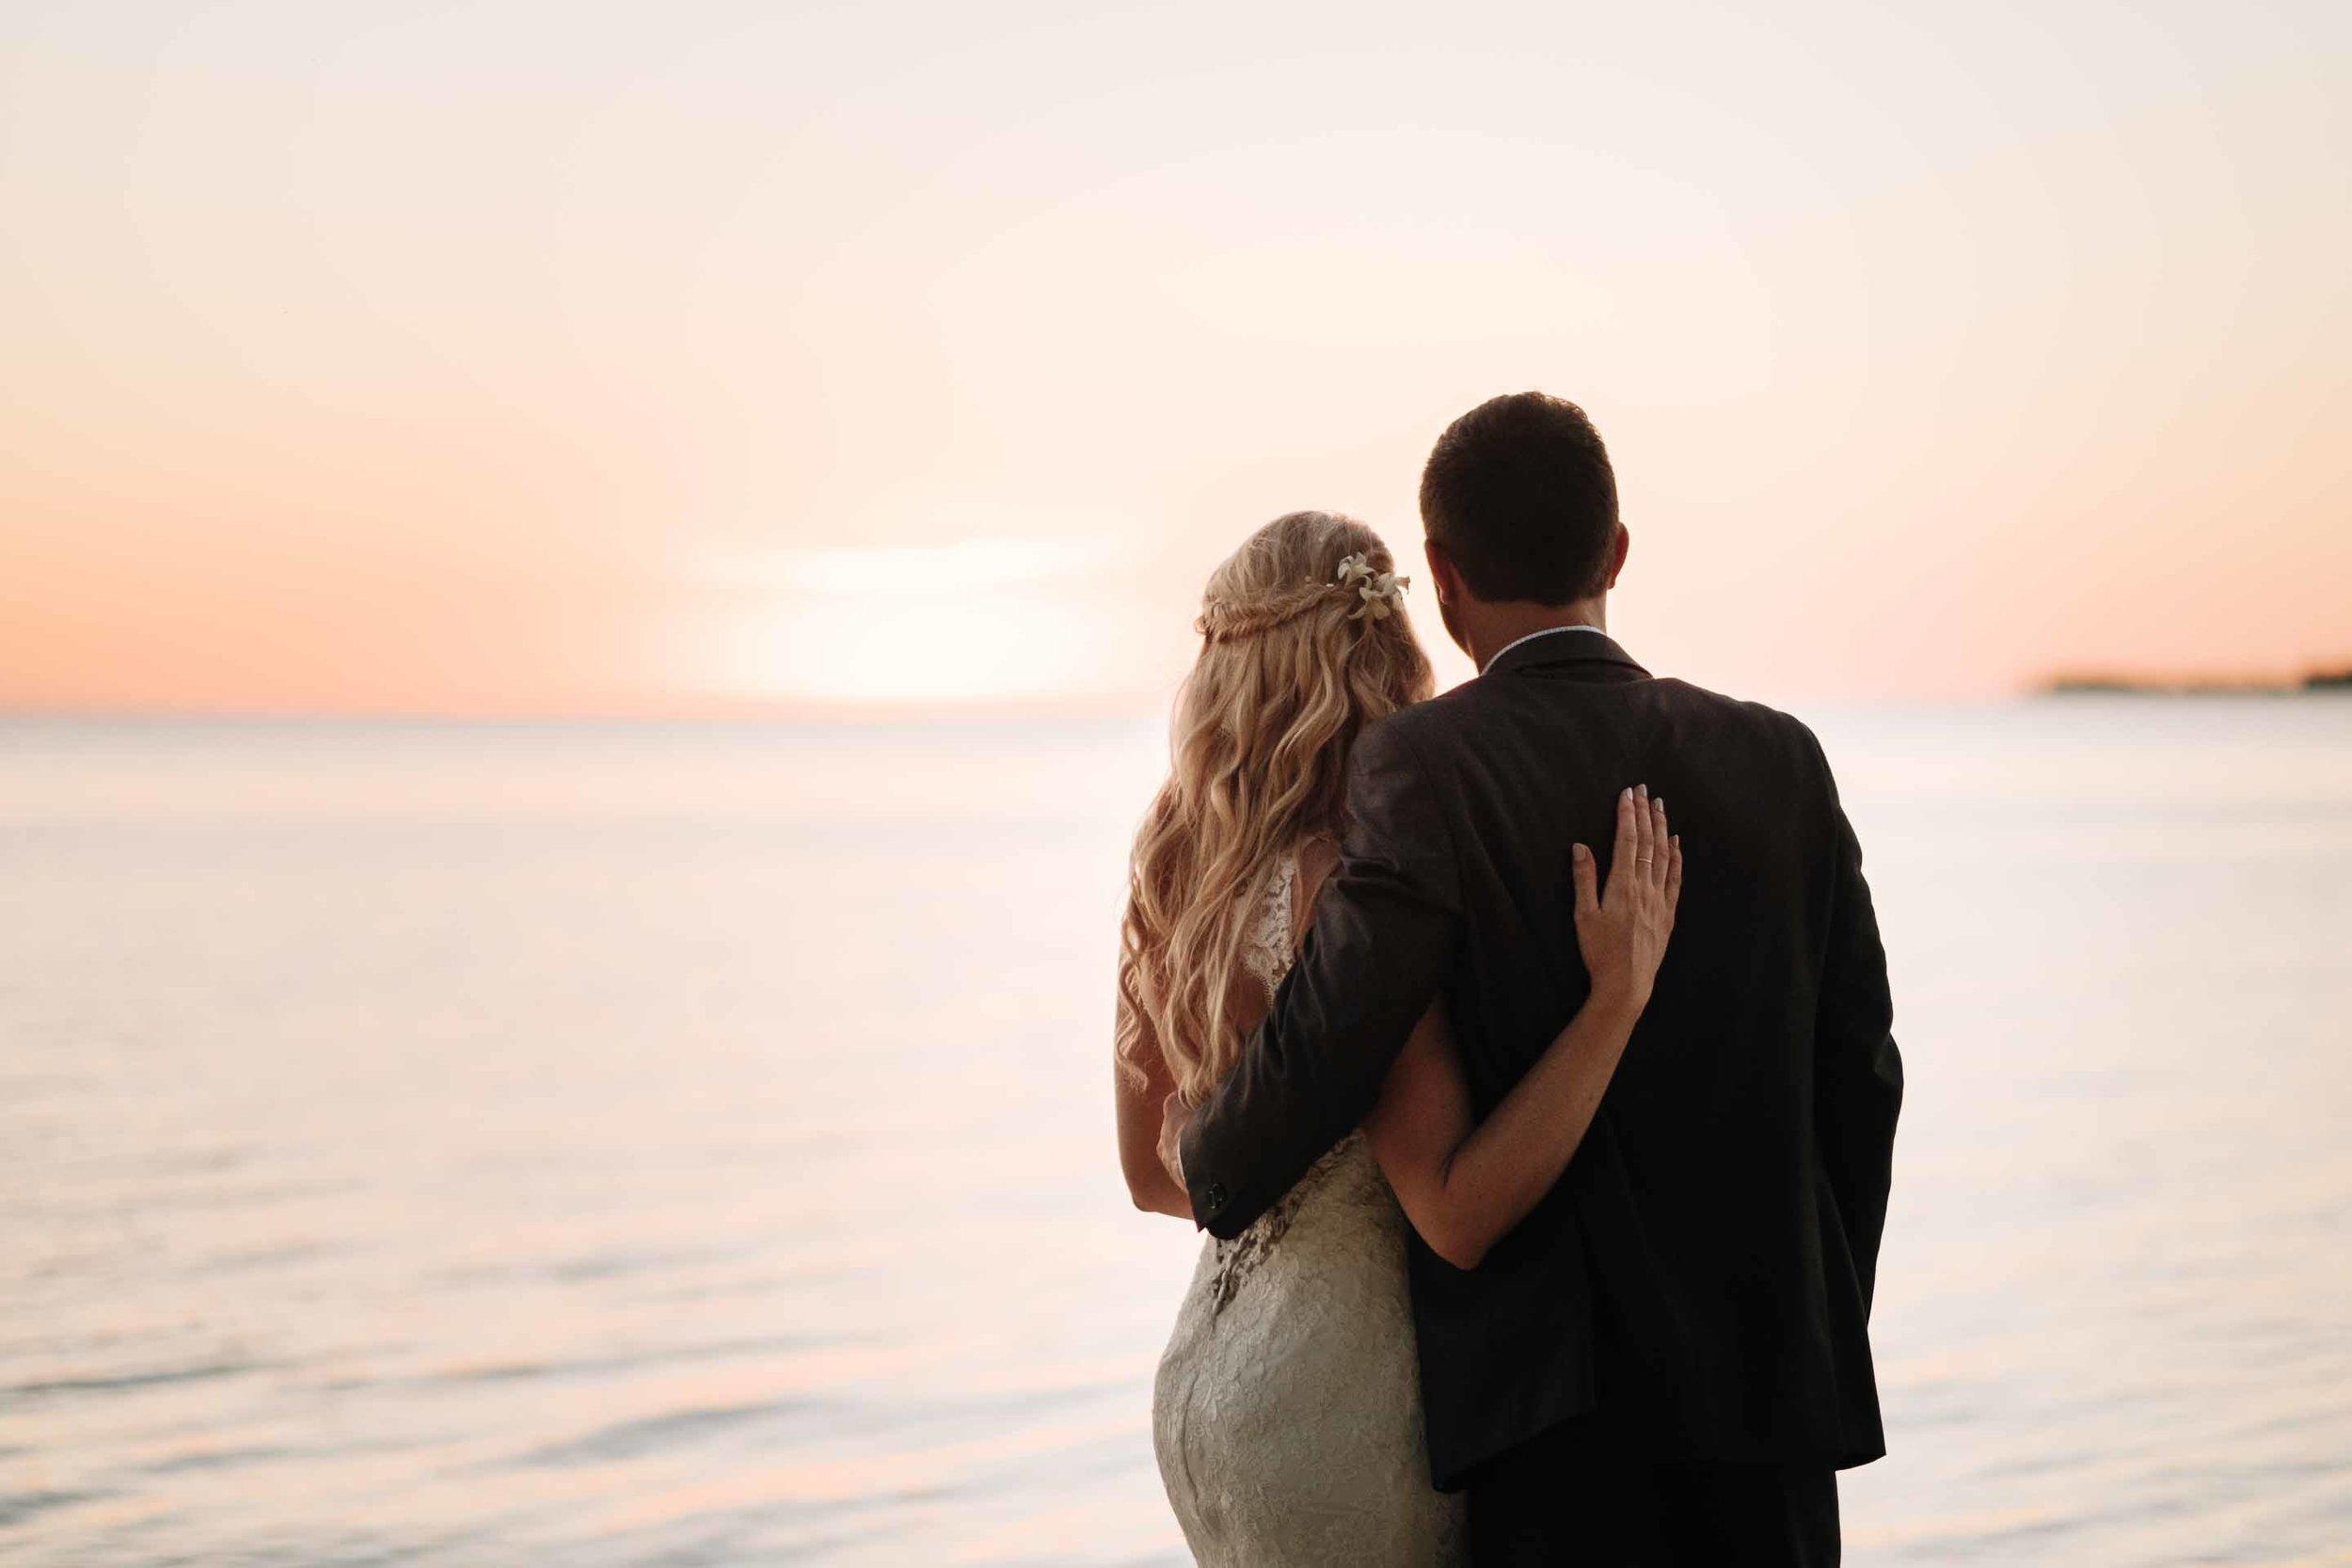 the bride and groom watch as their first sunset as husband and wife disappears behind the horizon